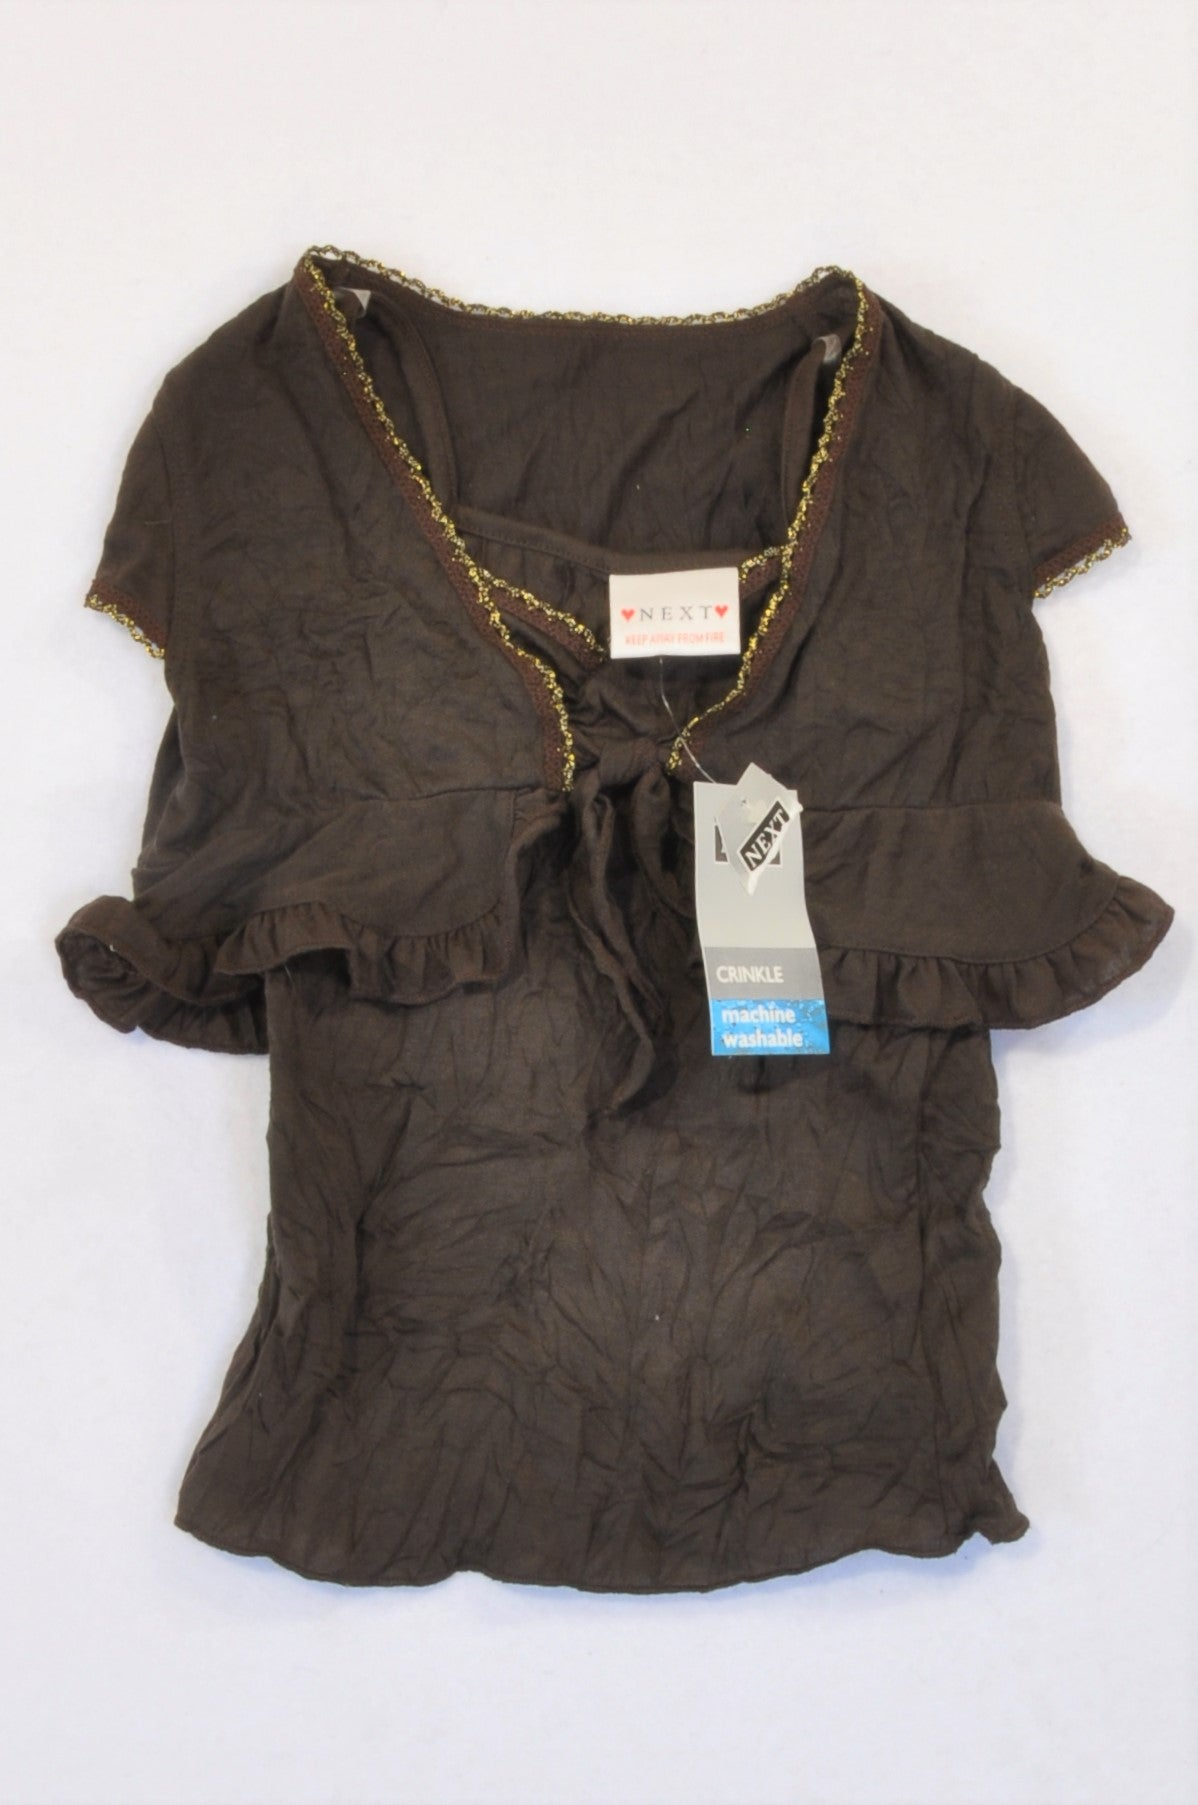 New Next Brown Frill Gold Trim T-Shirt & Cardigan Girls 3-4 years